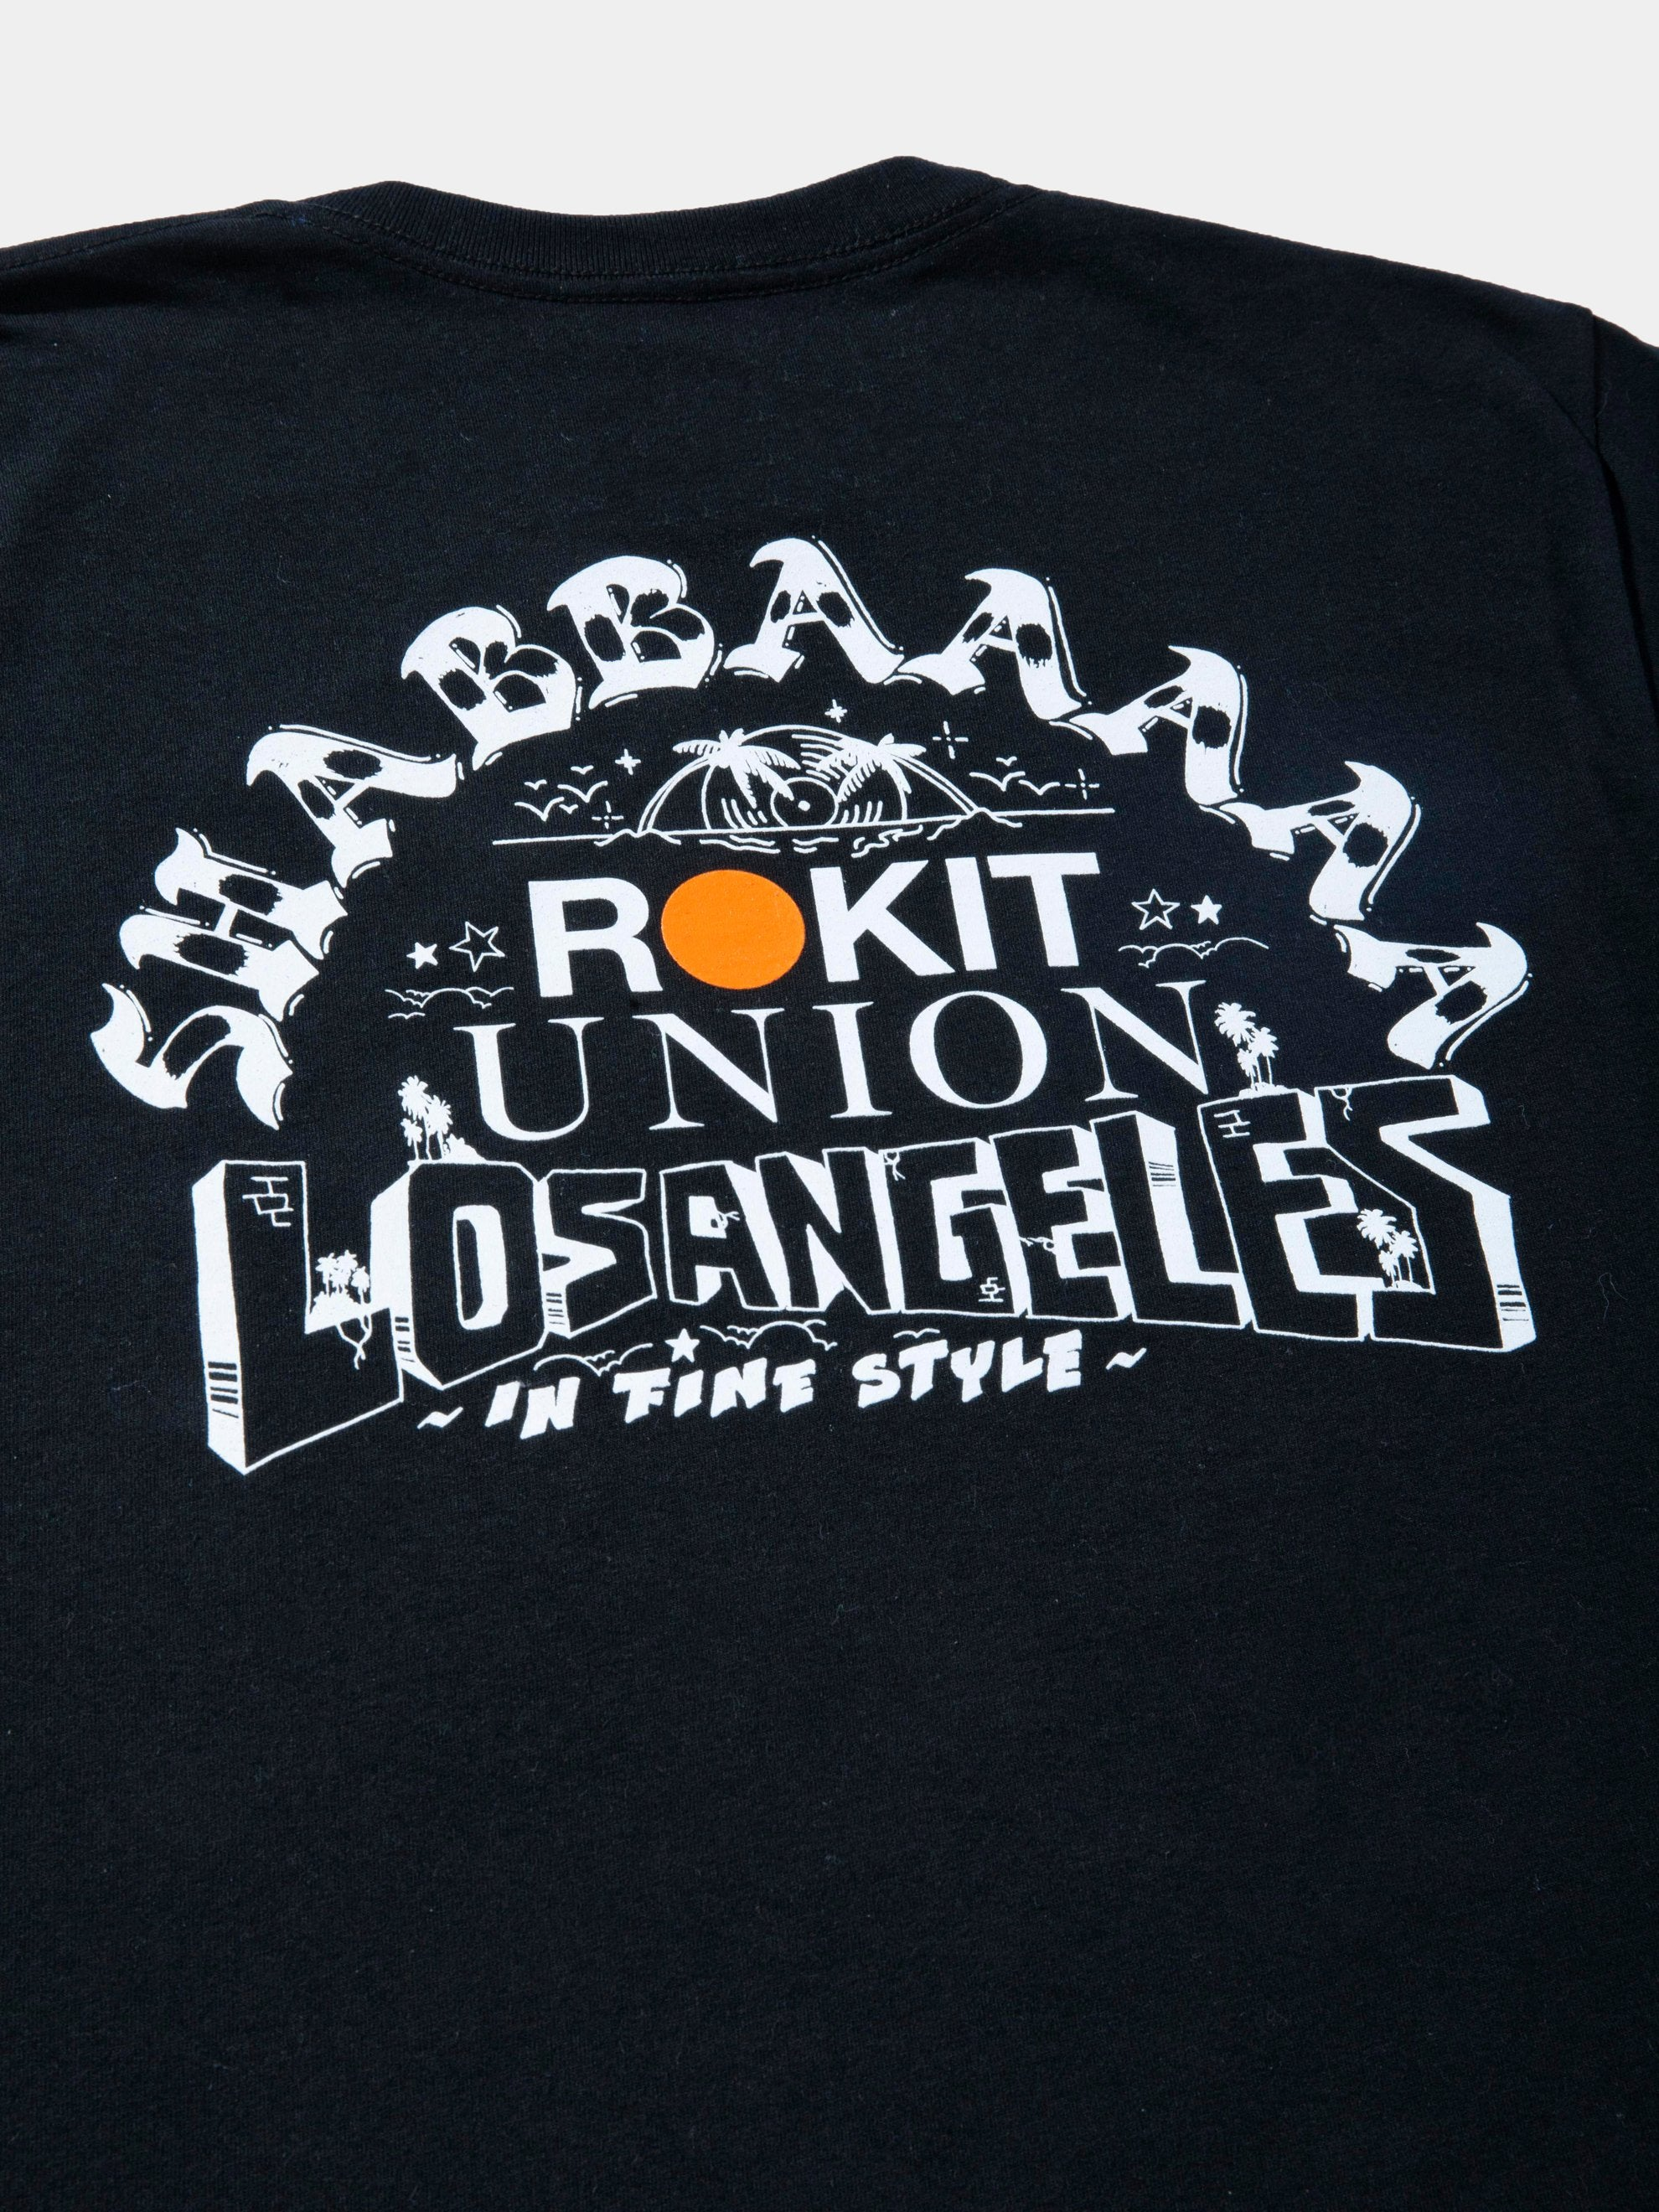 Black SHABBA x ROKIT x UNION T-Shirt 2